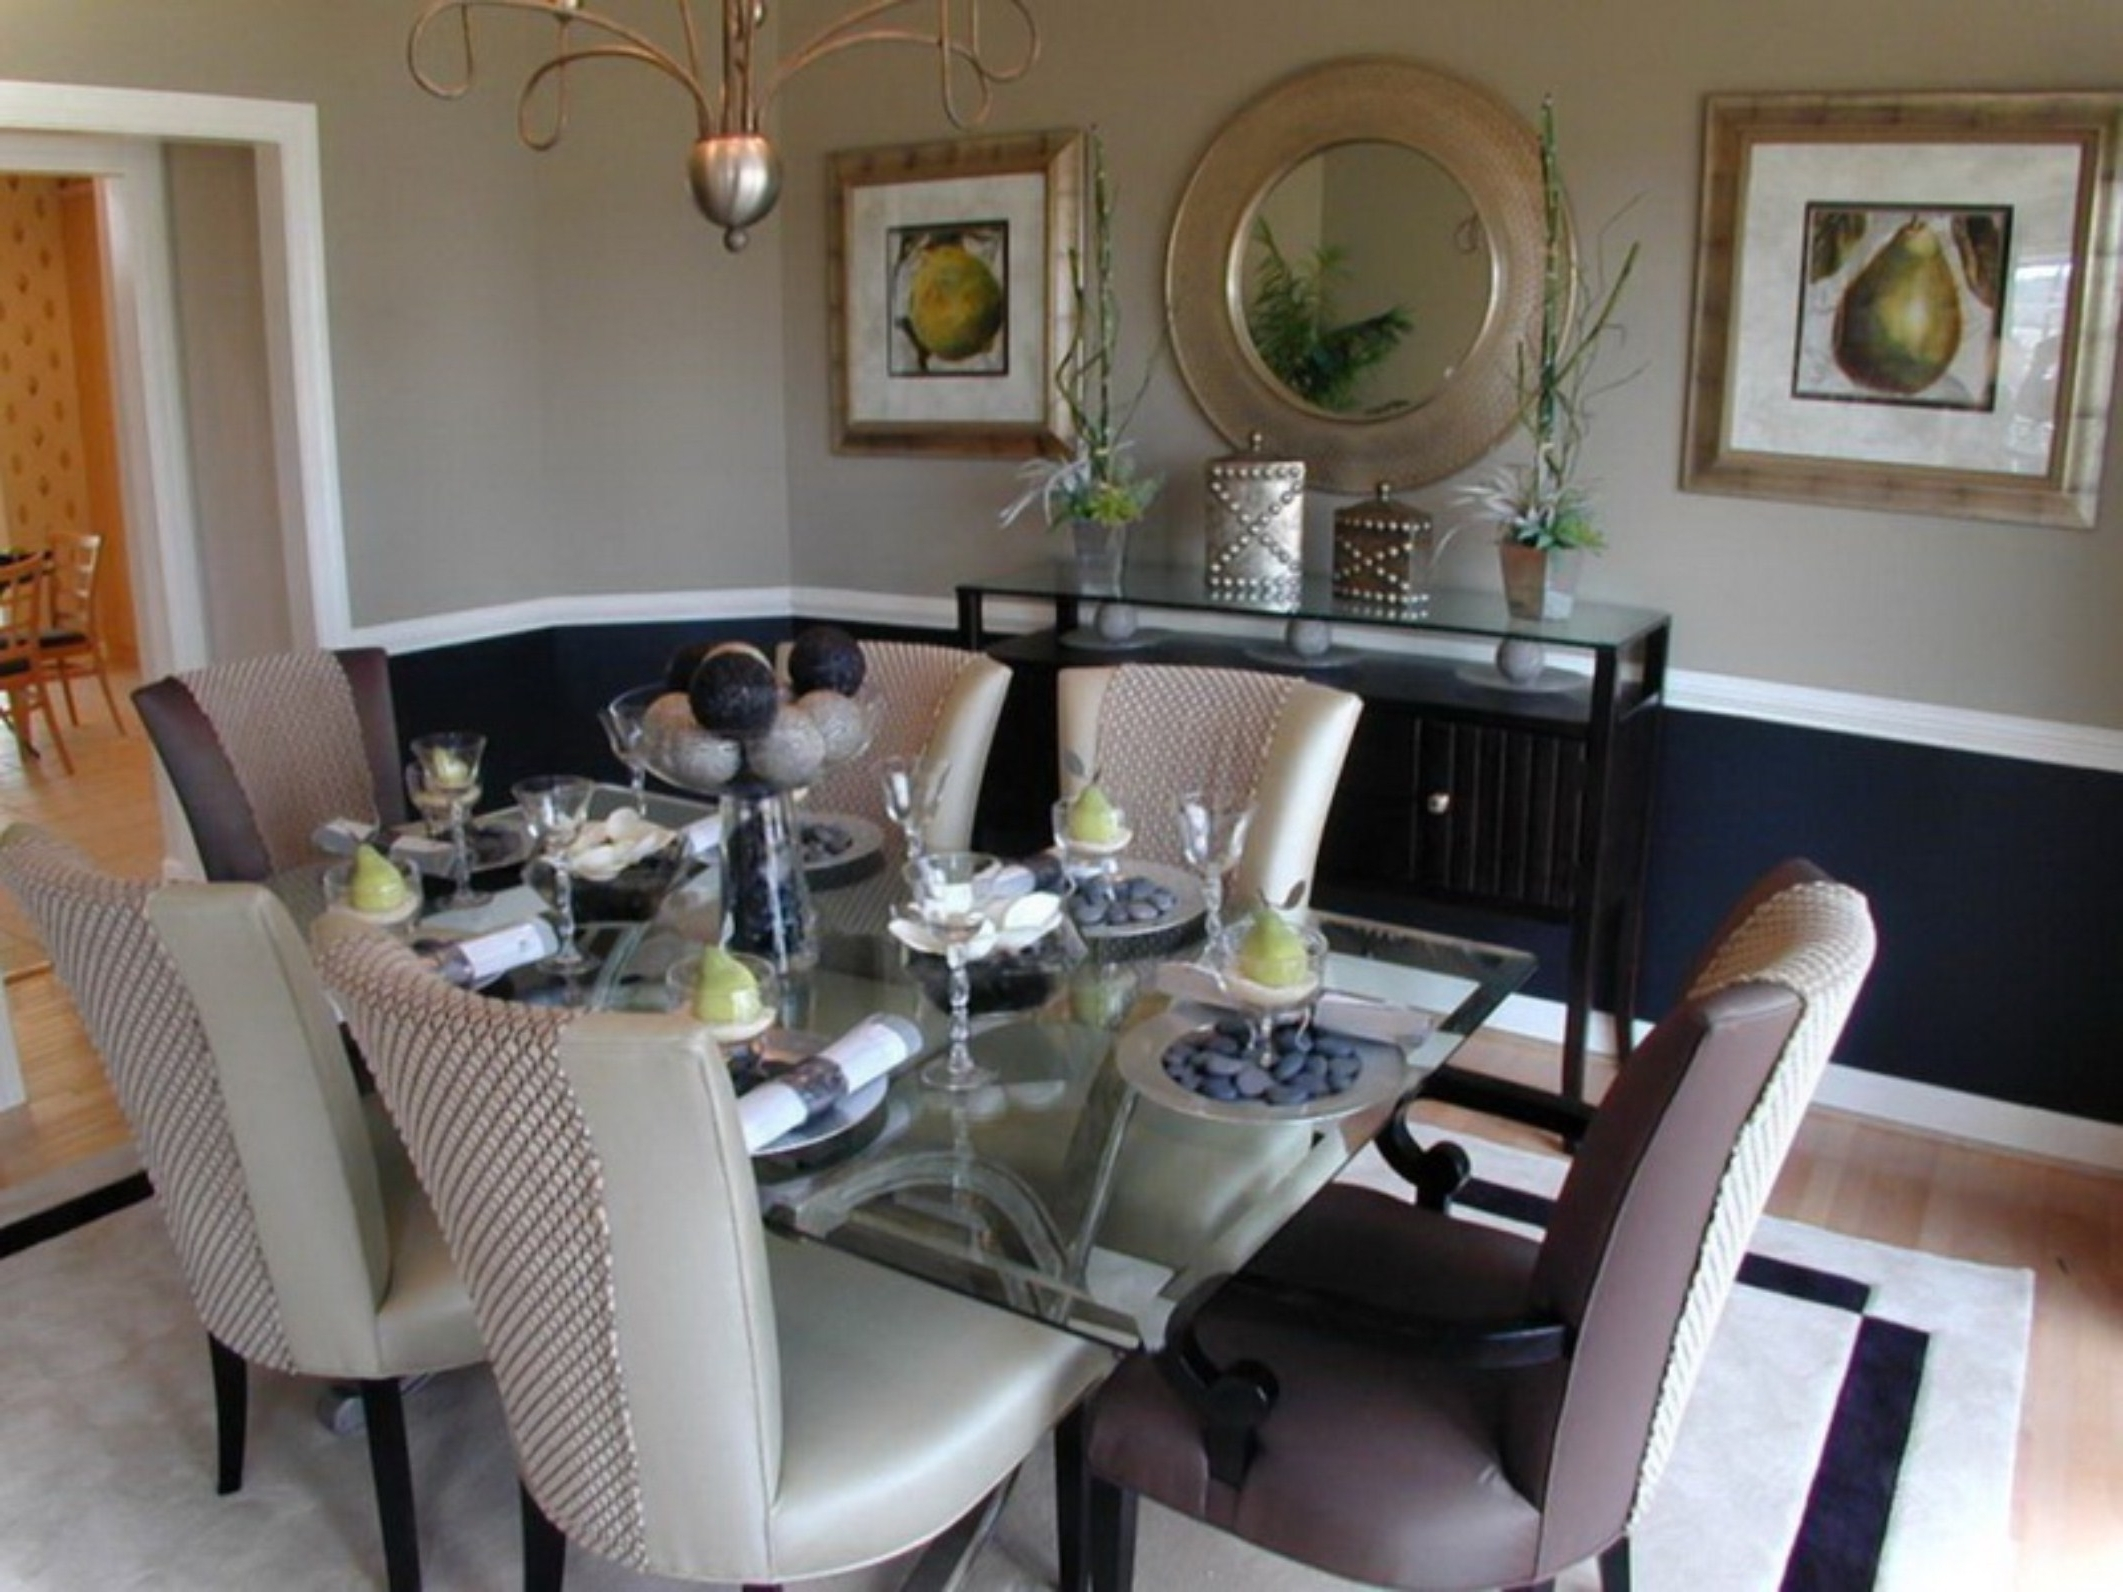 wallpaper for dining room modern photo - 1